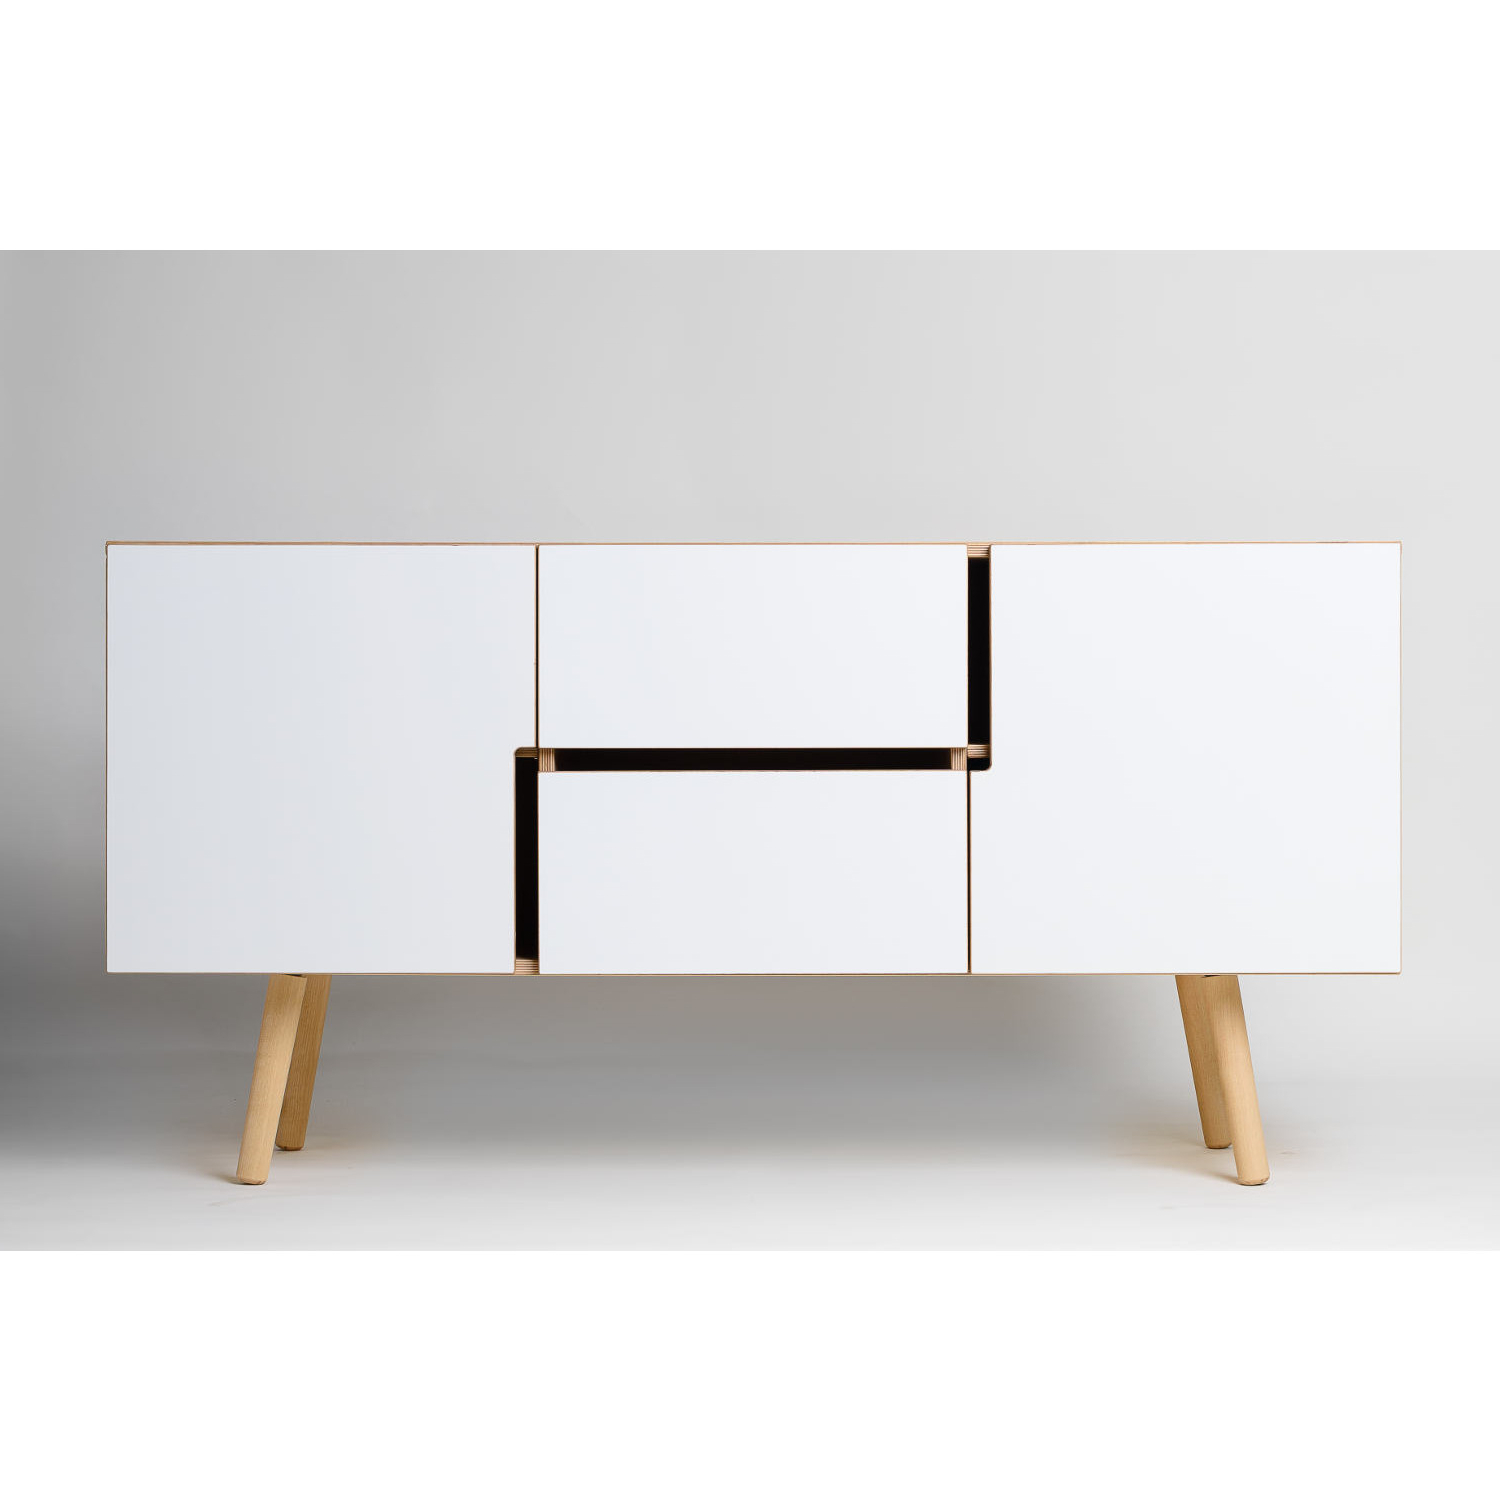 Decovry, Exclusive Home Decoration With Favorite Oil Pale Finish 4 Door Sideboards (View 6 of 20)